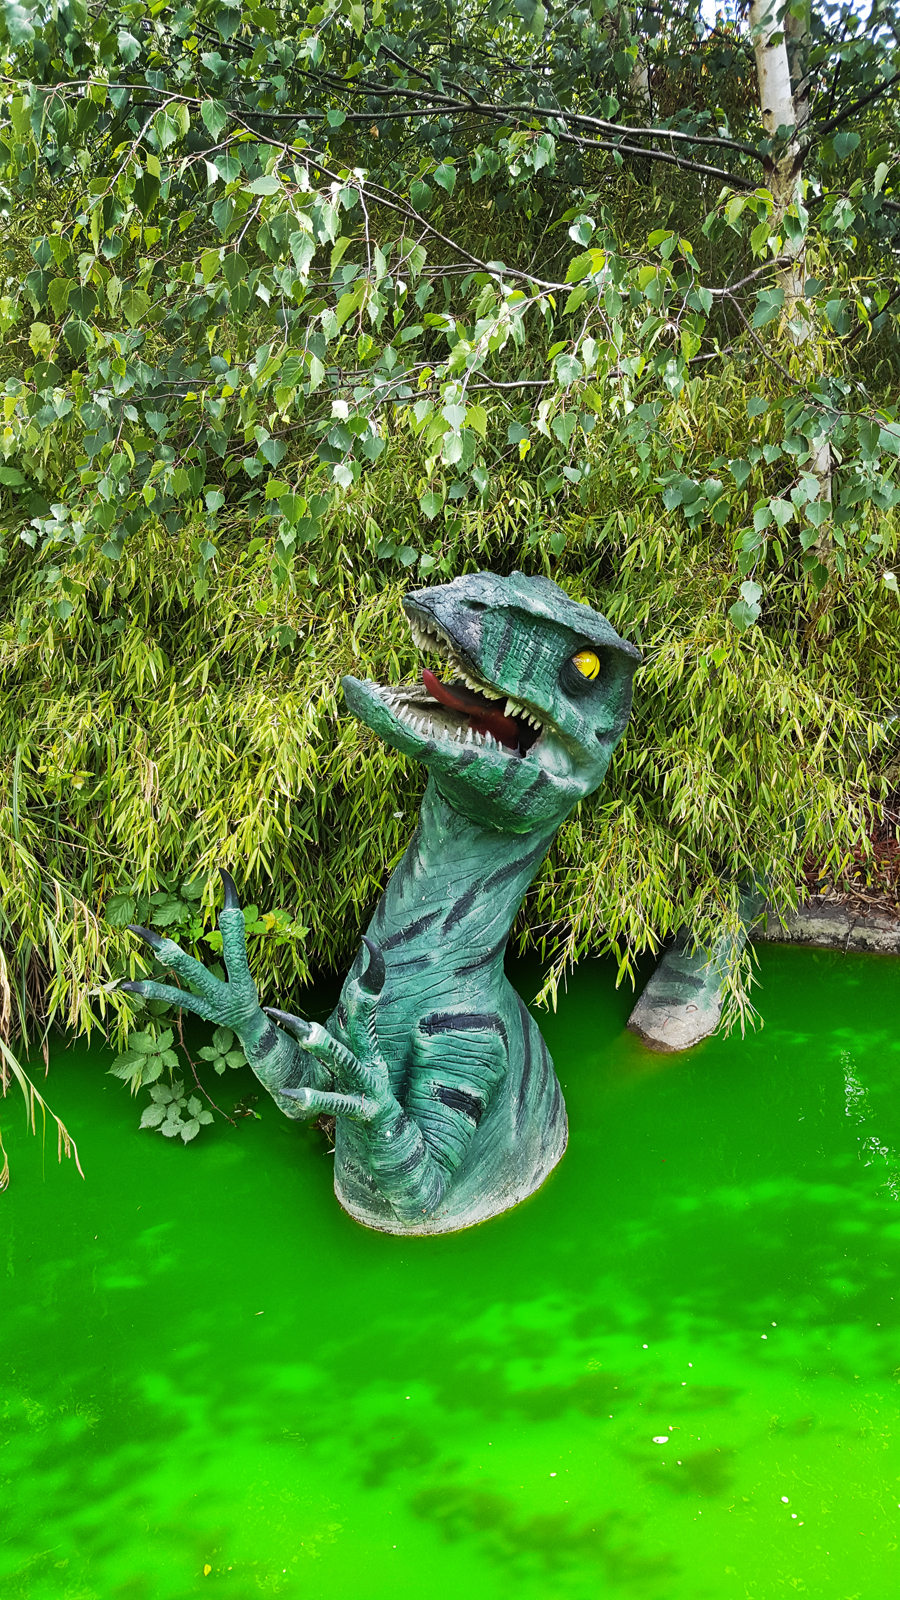 new-malden england dinosaur mini-golf